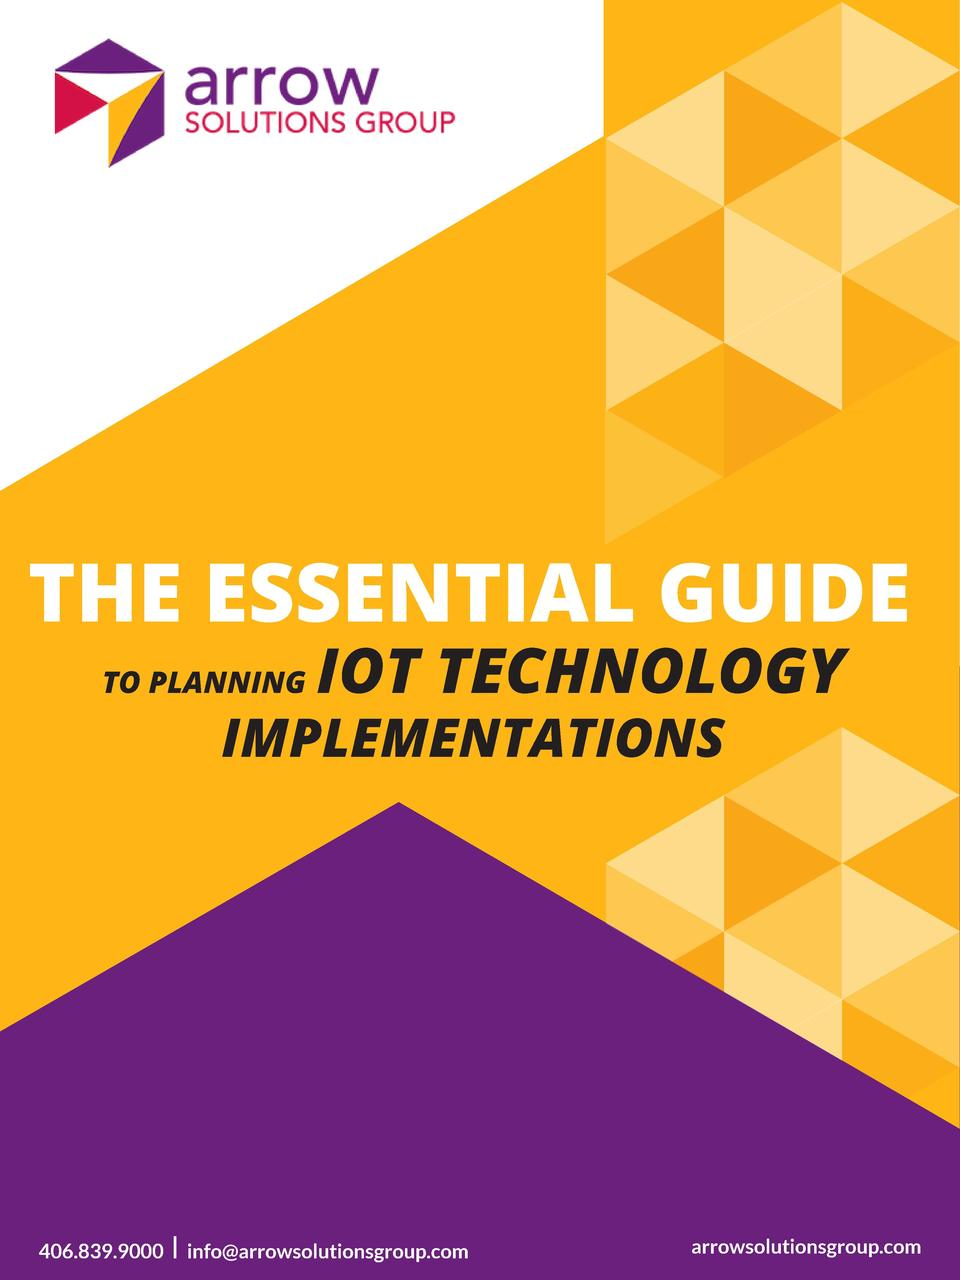 THE ESSENTIAL GUIDE TO PLANNING  IOT TECHNOLOGY  IMPLEMENTATIONS  406.839.9000  l info arrowsolutionsgroup.com  arrowsolut...